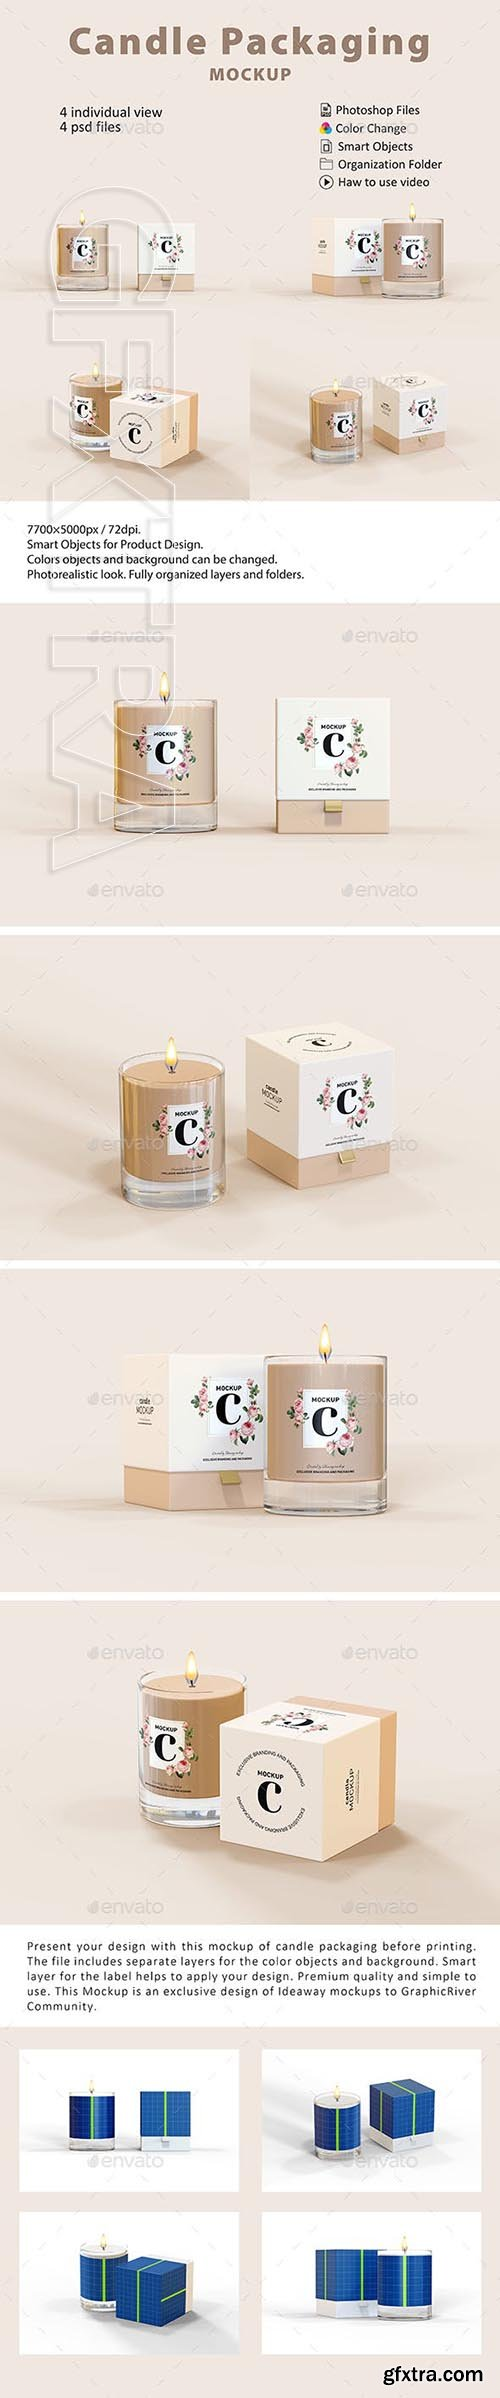 GraphicRiver - Candle Packaging Mockup 23814229